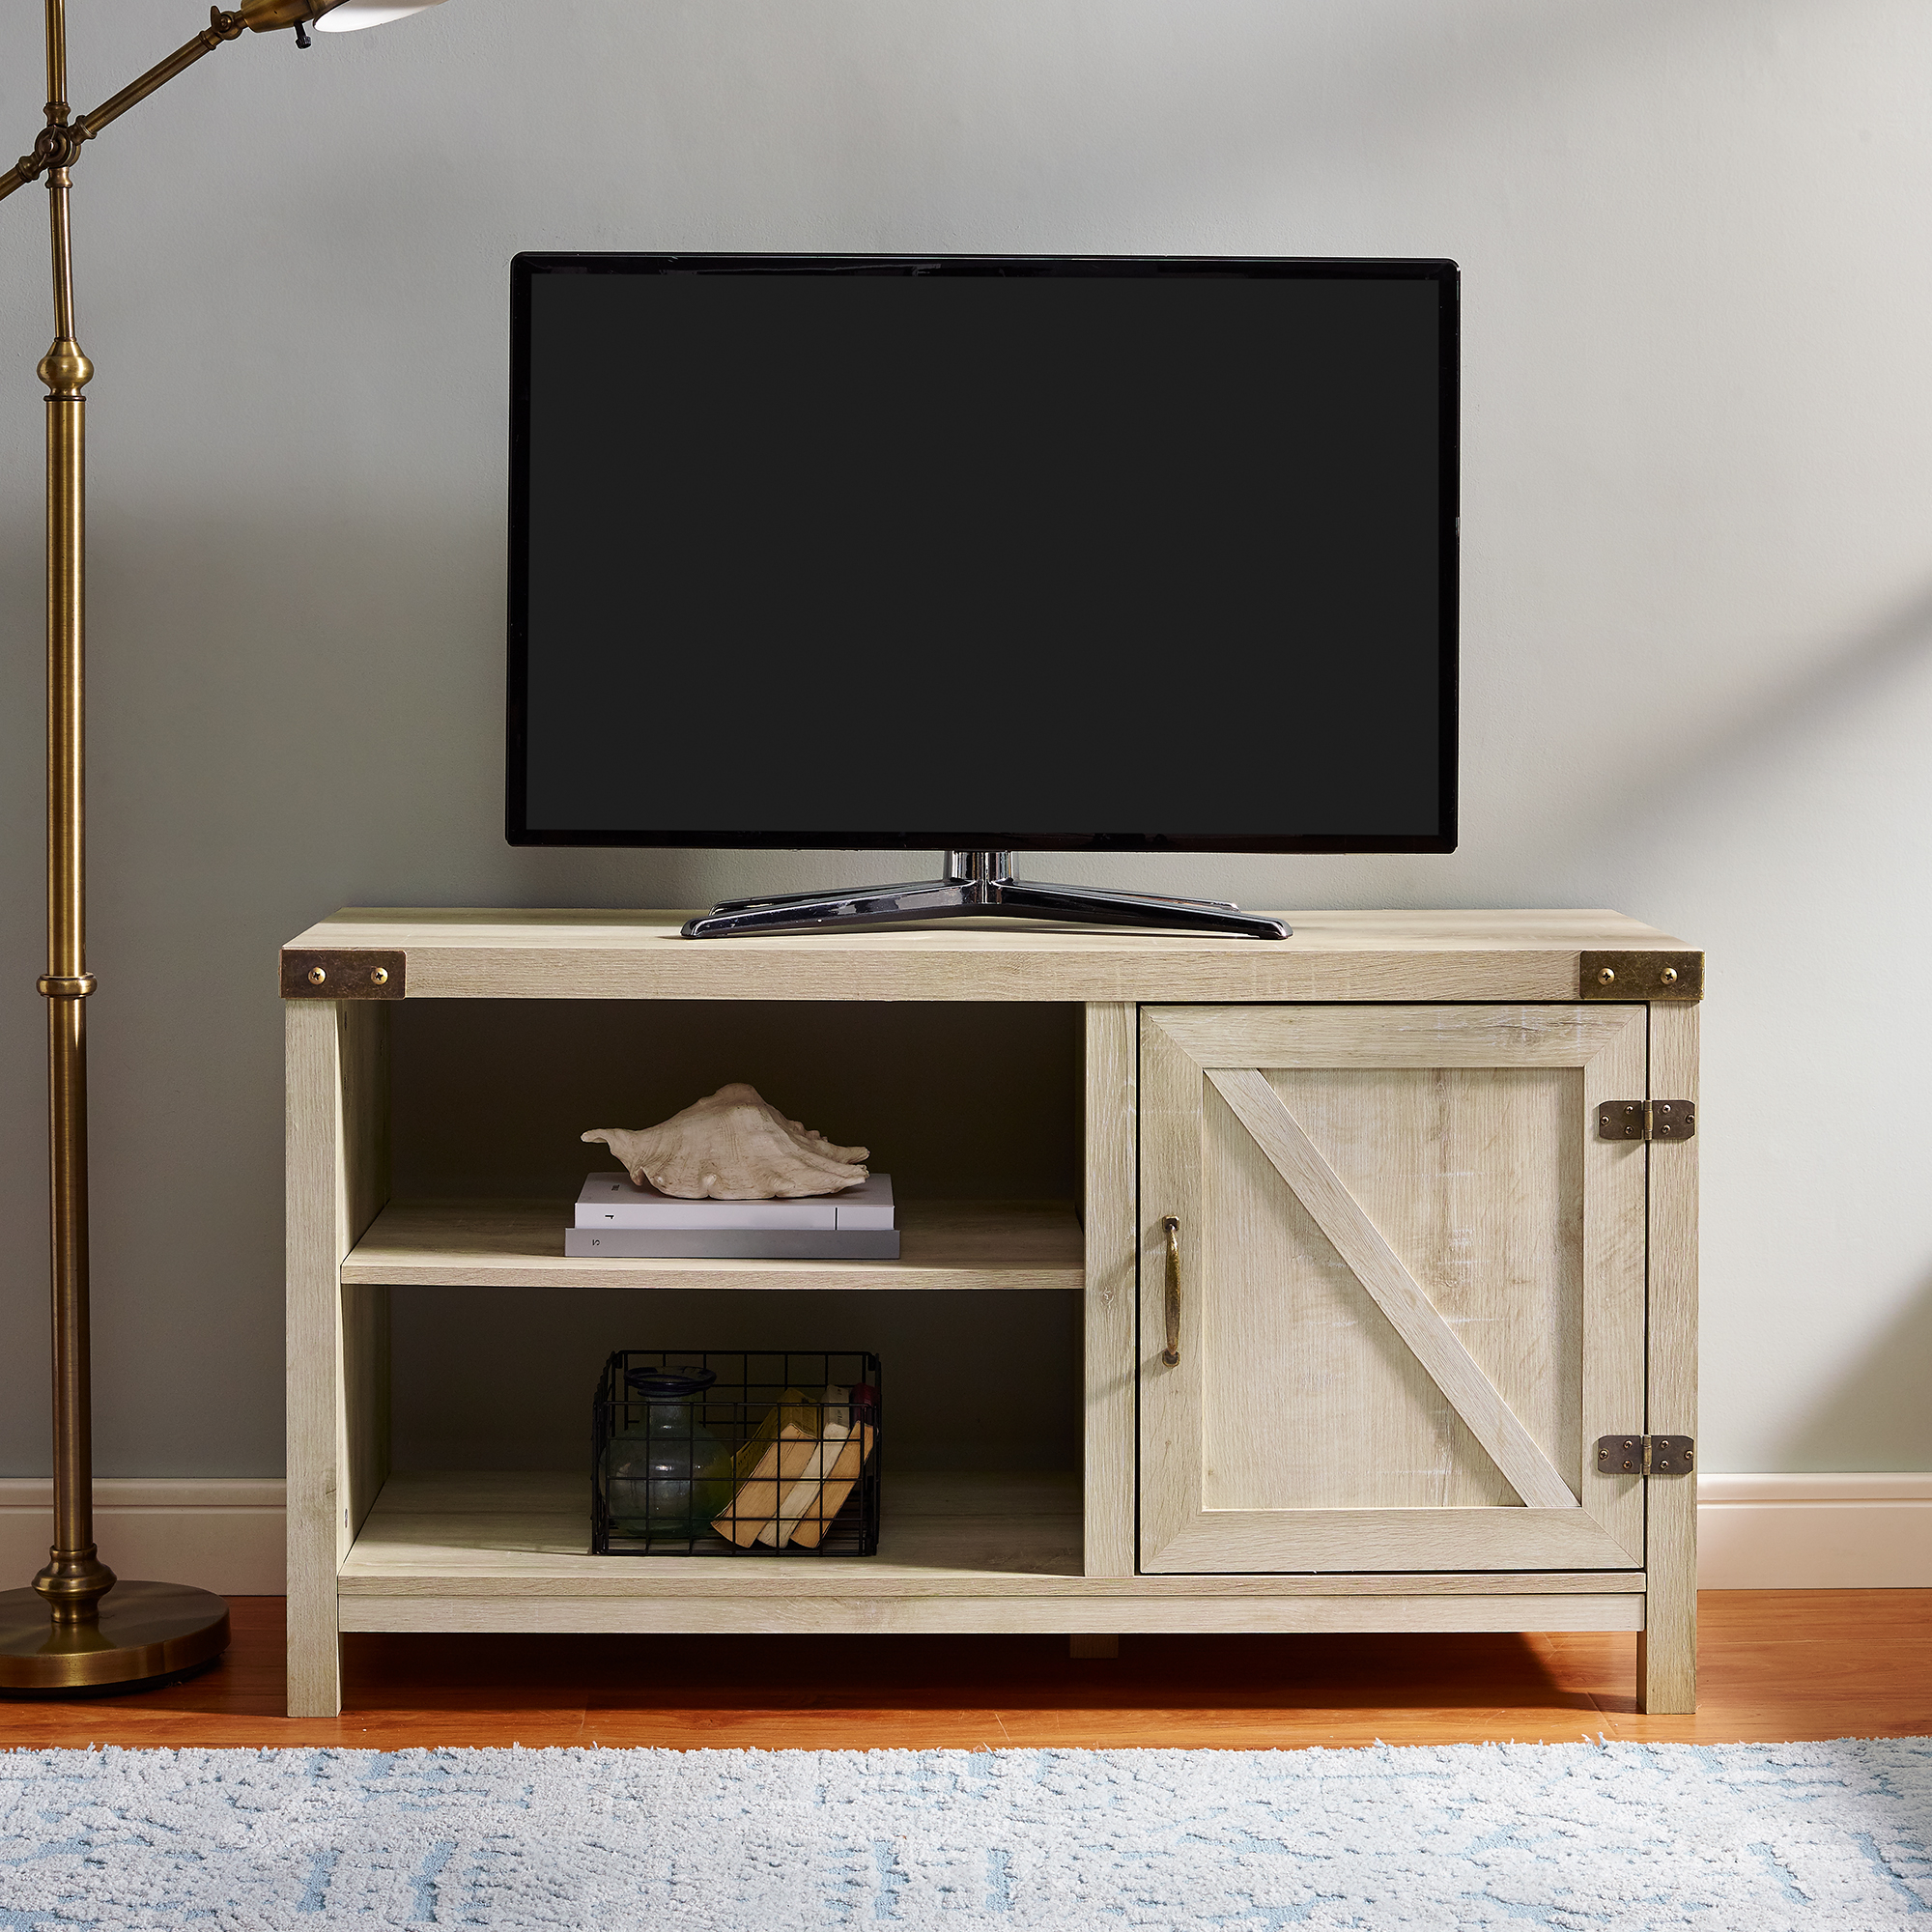 """Woven Paths Farmhouse Barn Door Tv Stand For Tvs Up To 50 For Leonid Tv Stands For Tvs Up To 50"""" (View 1 of 20)"""